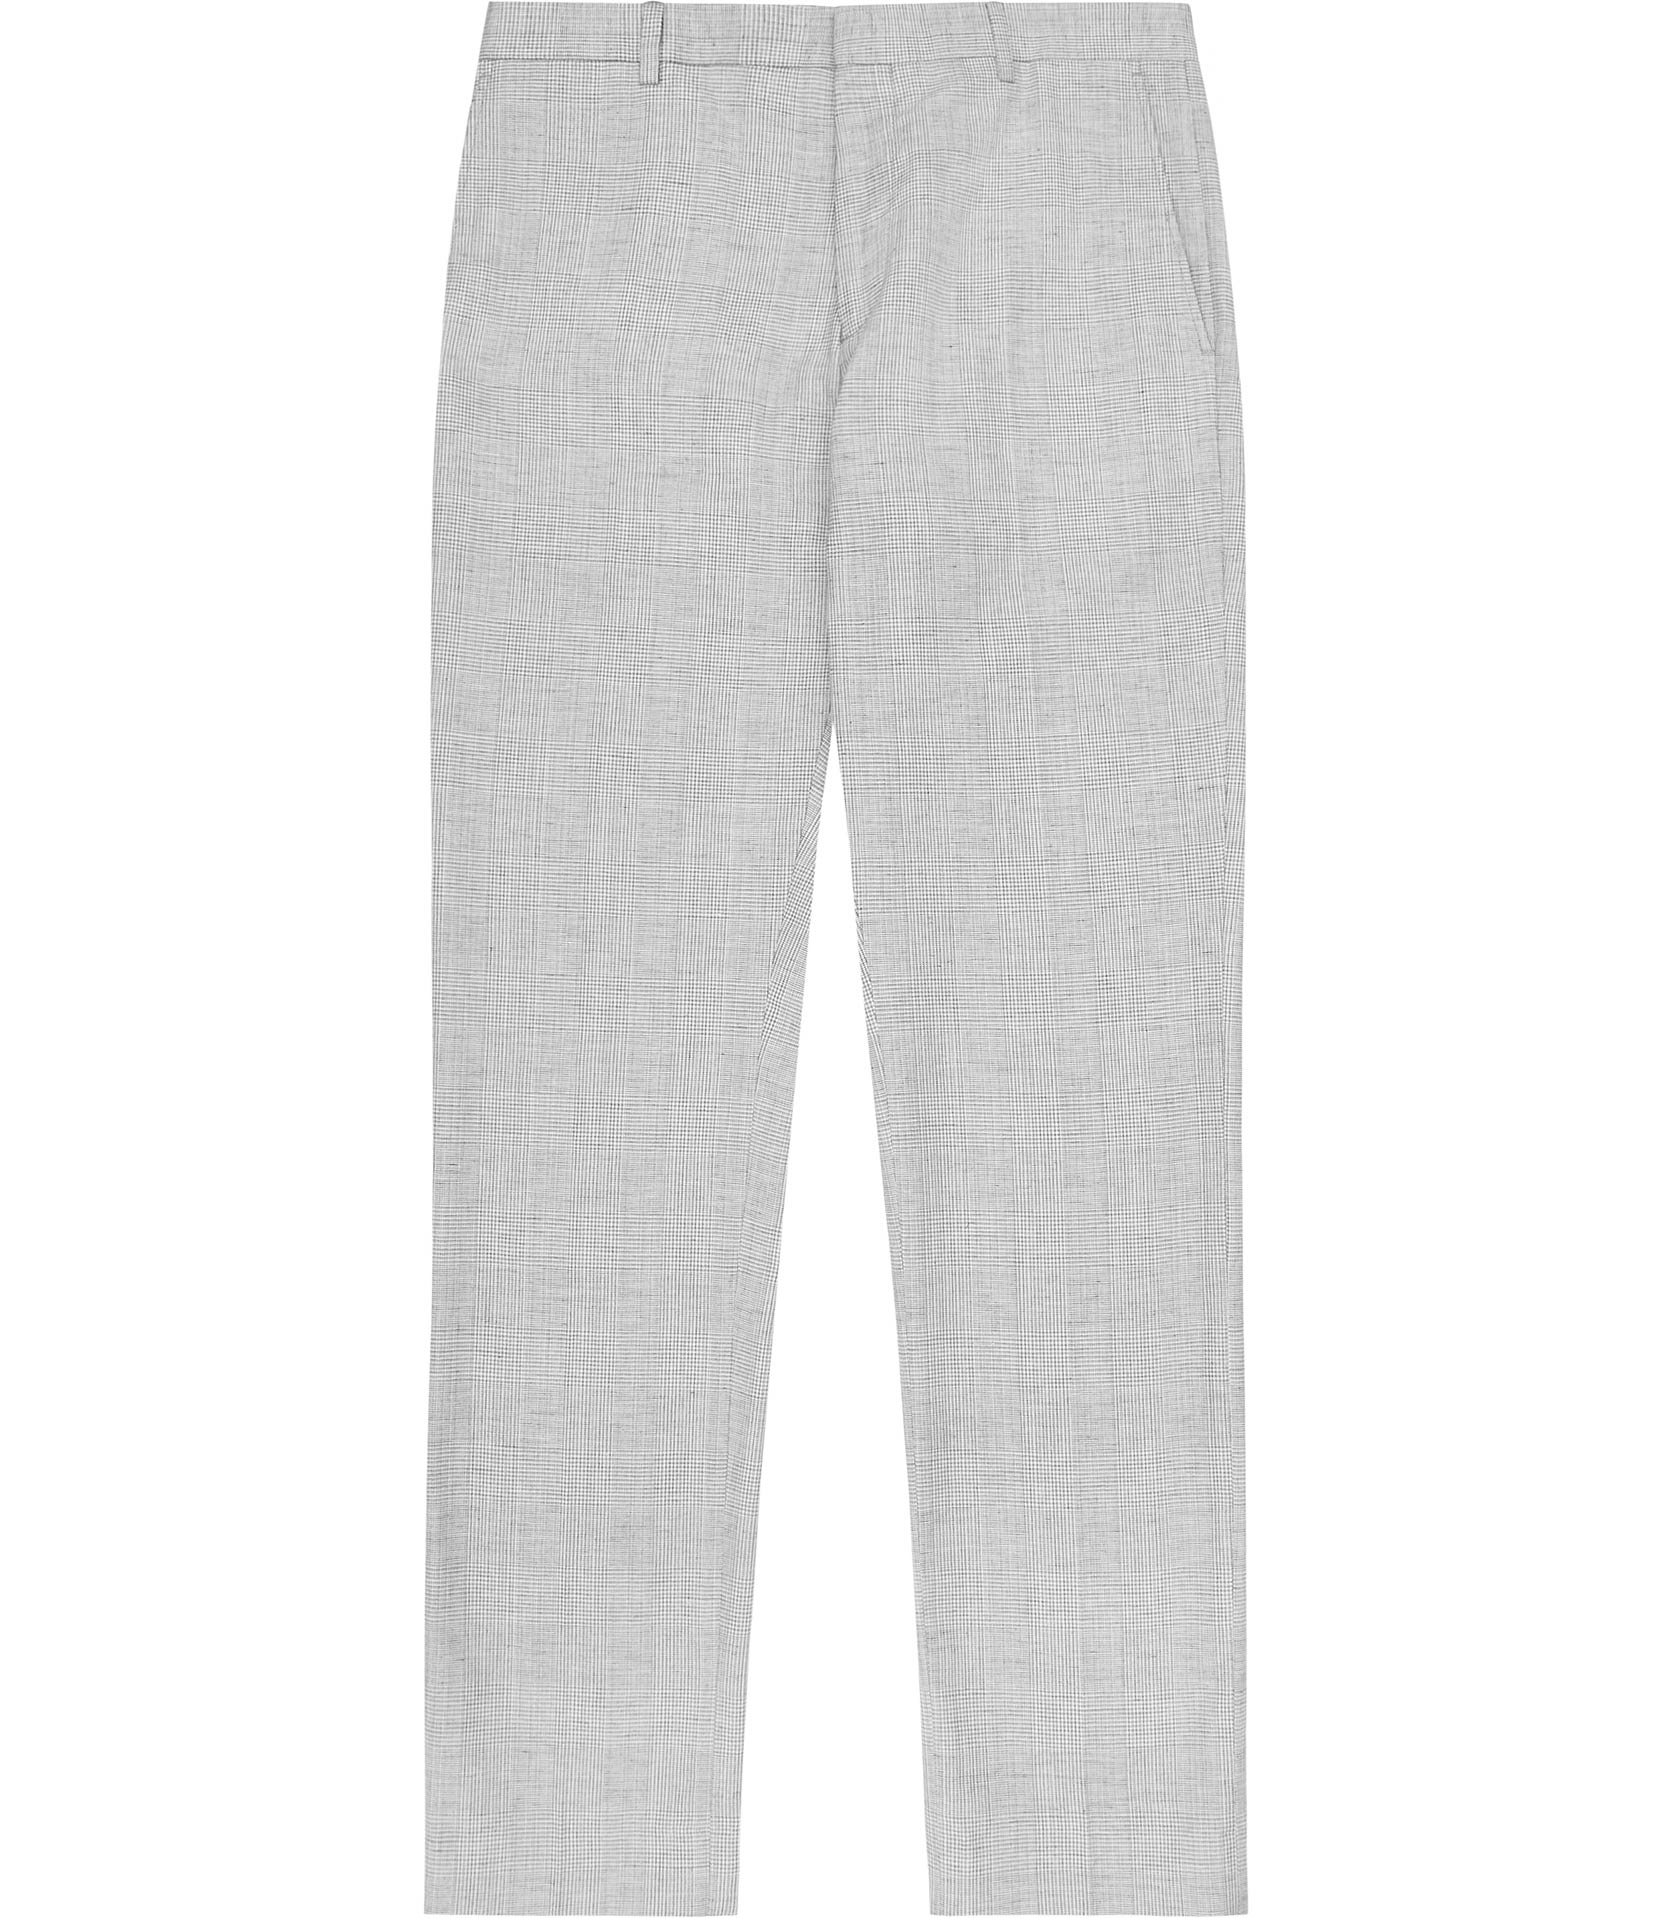 Reiss Robbie Check Tailored Suit Trousers in Grey (Grey) for Men